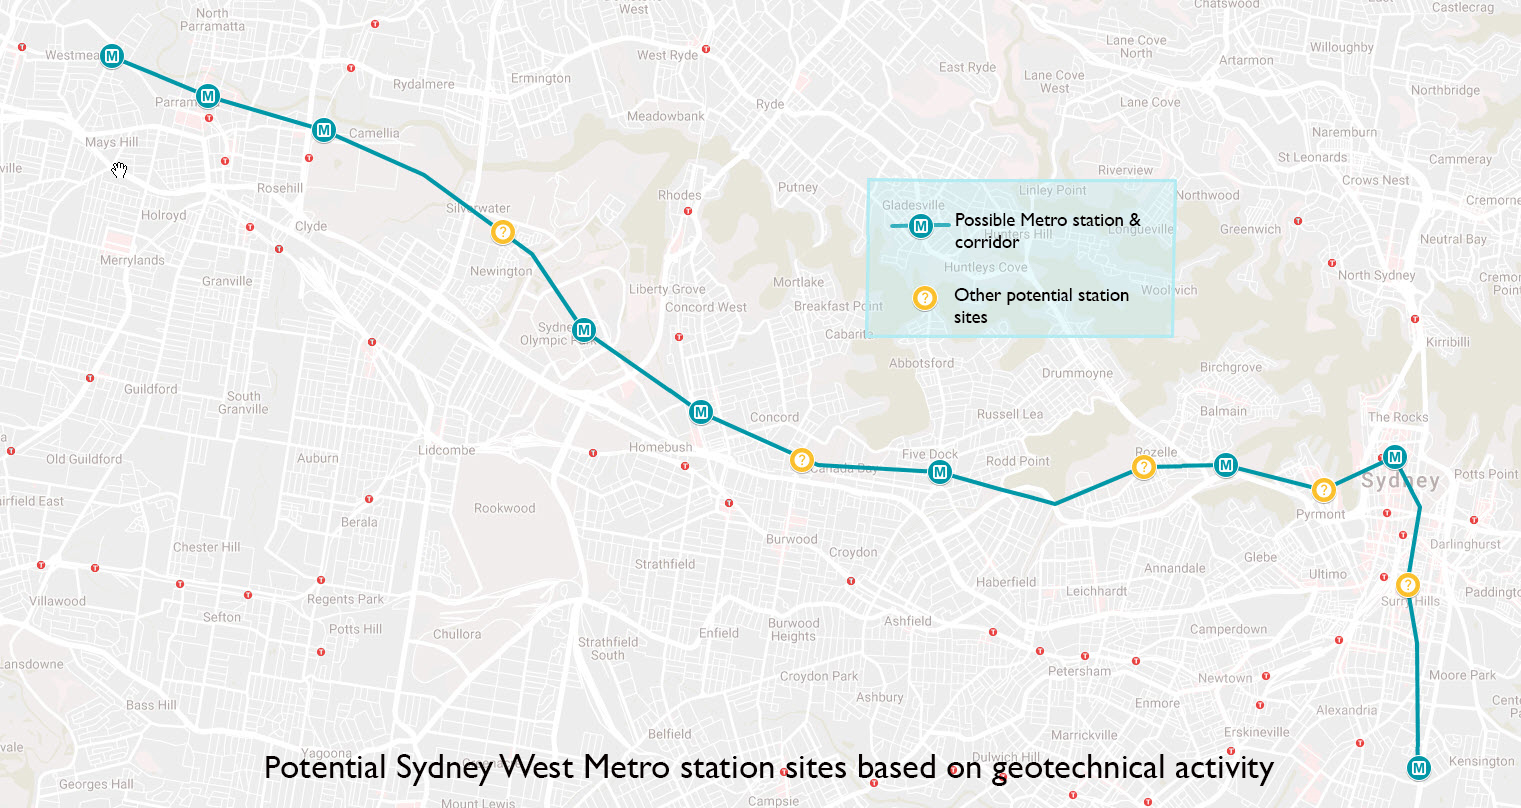 Rask Sydney Metro West geotech digging reveals potential stations PV-55